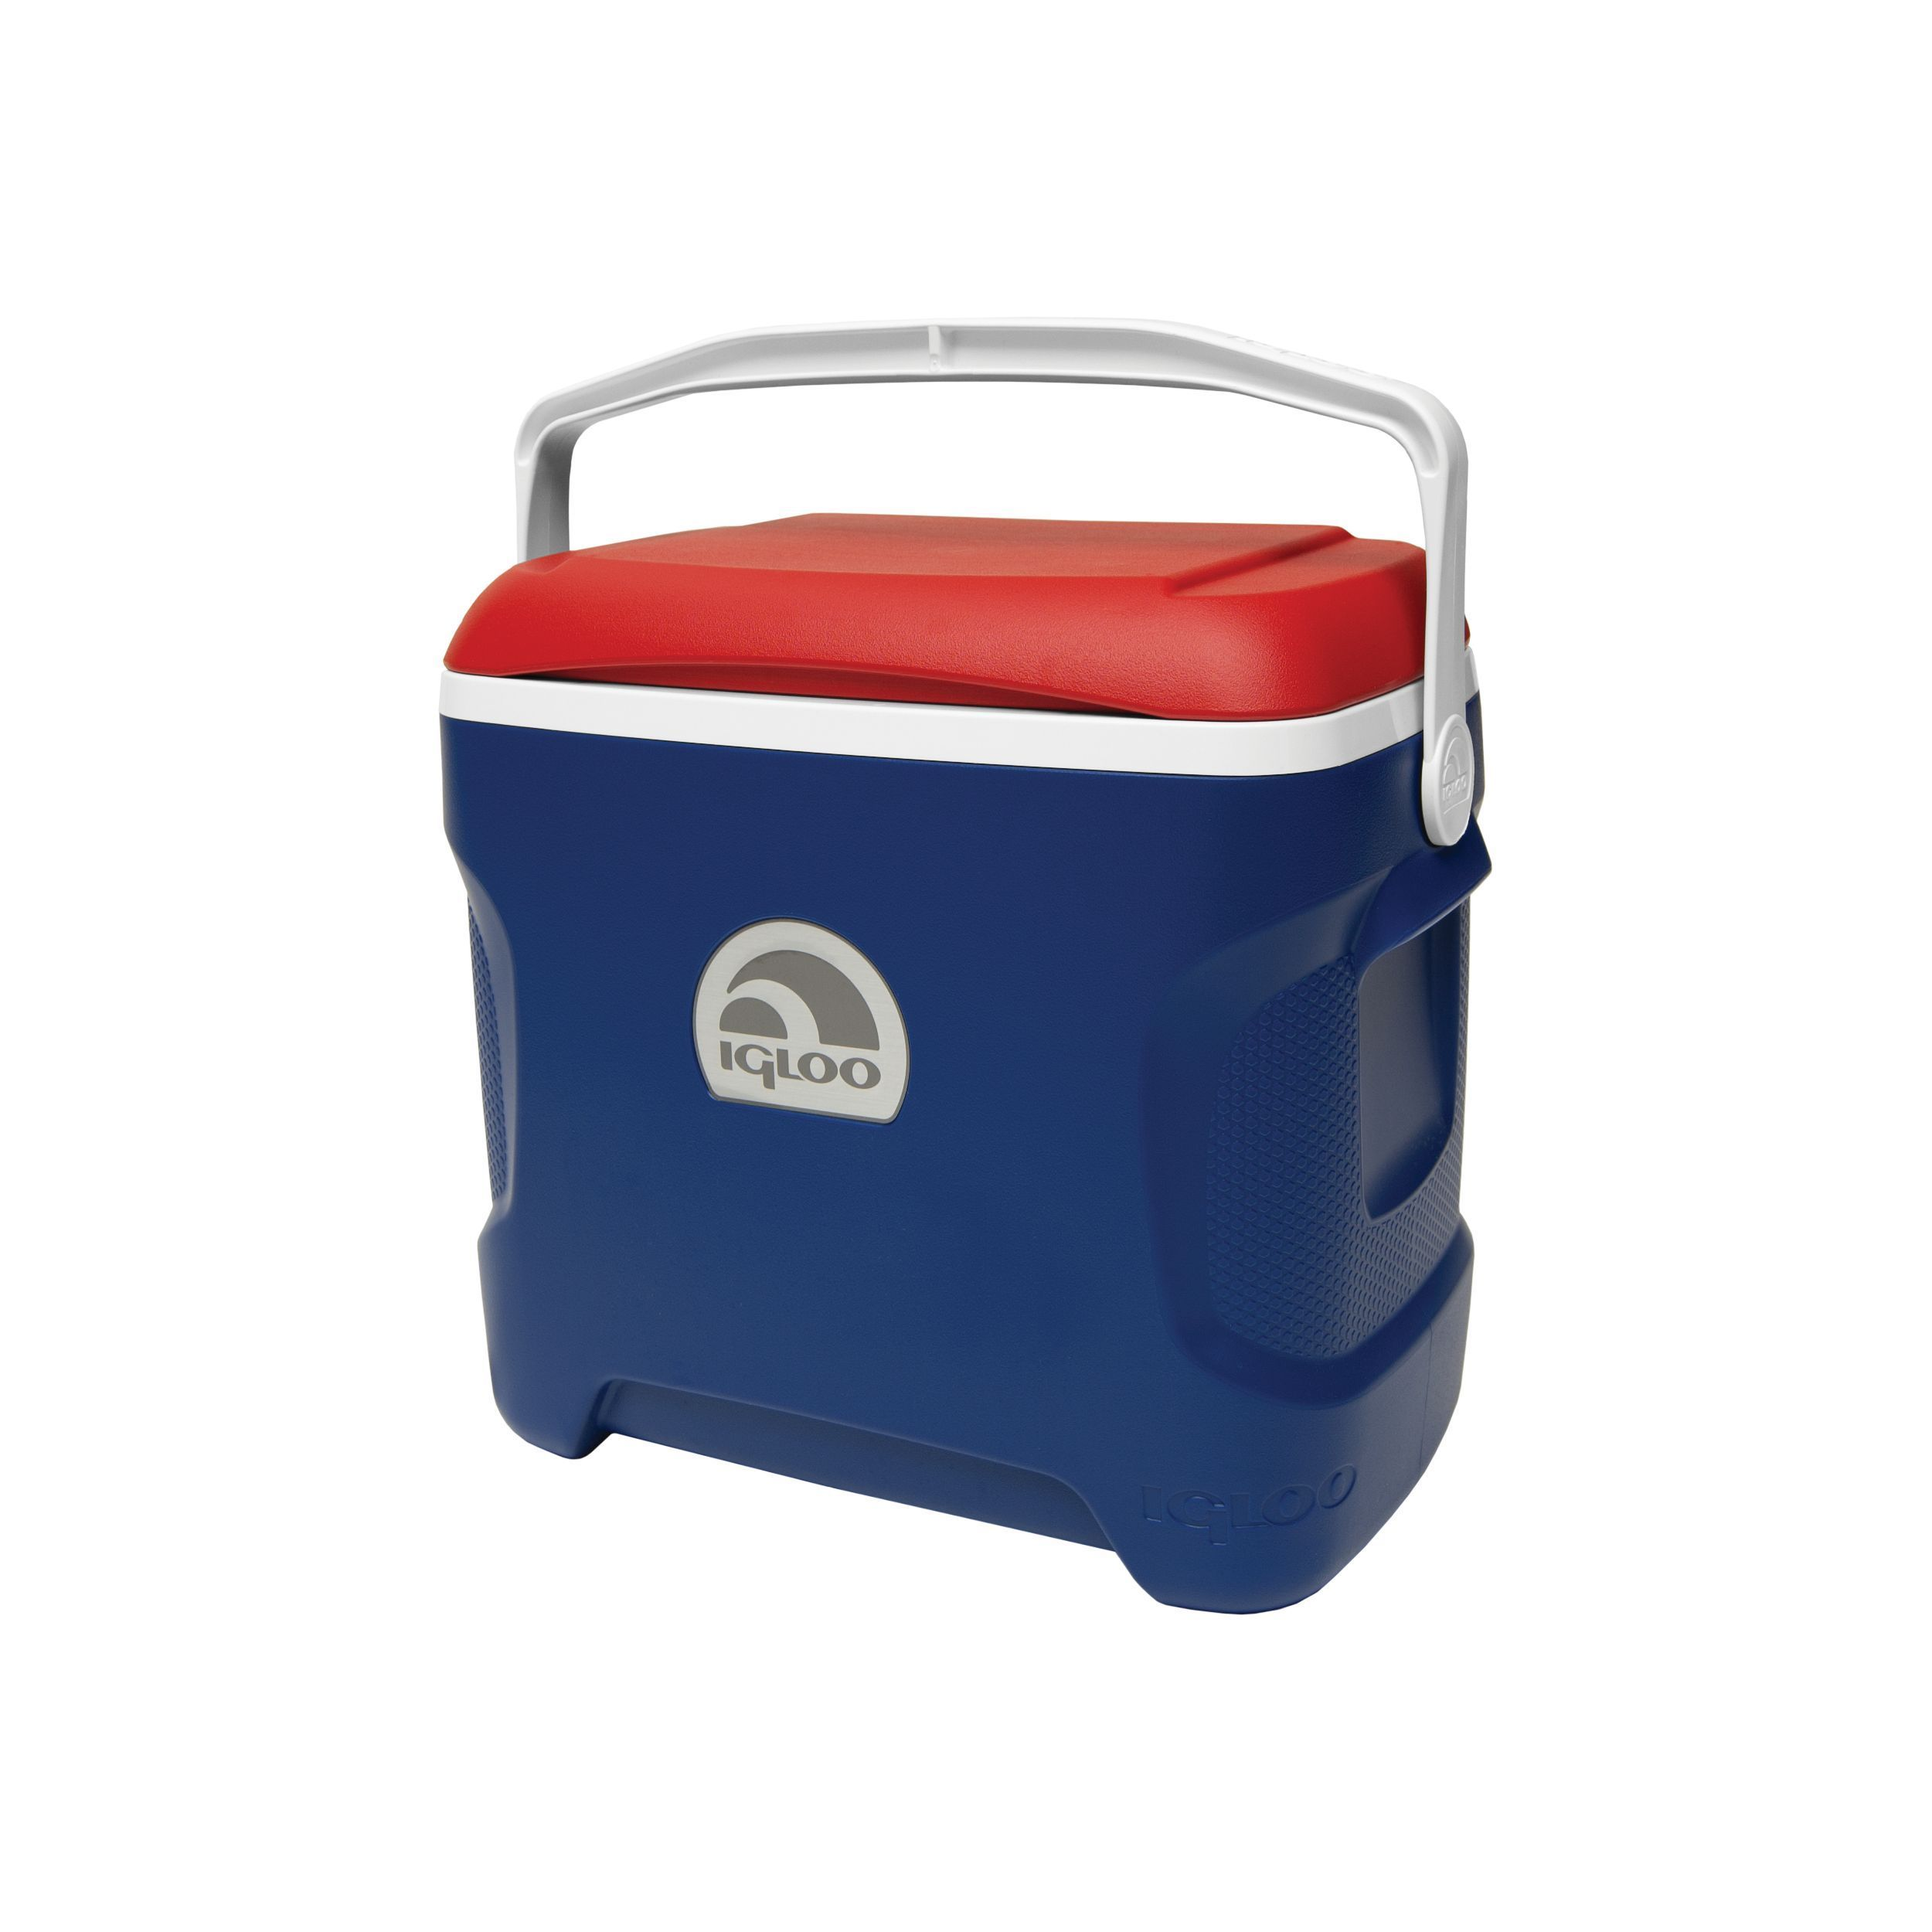 Igloo 44208 30-quart Contour Cooler Patriotic Color (Red ...